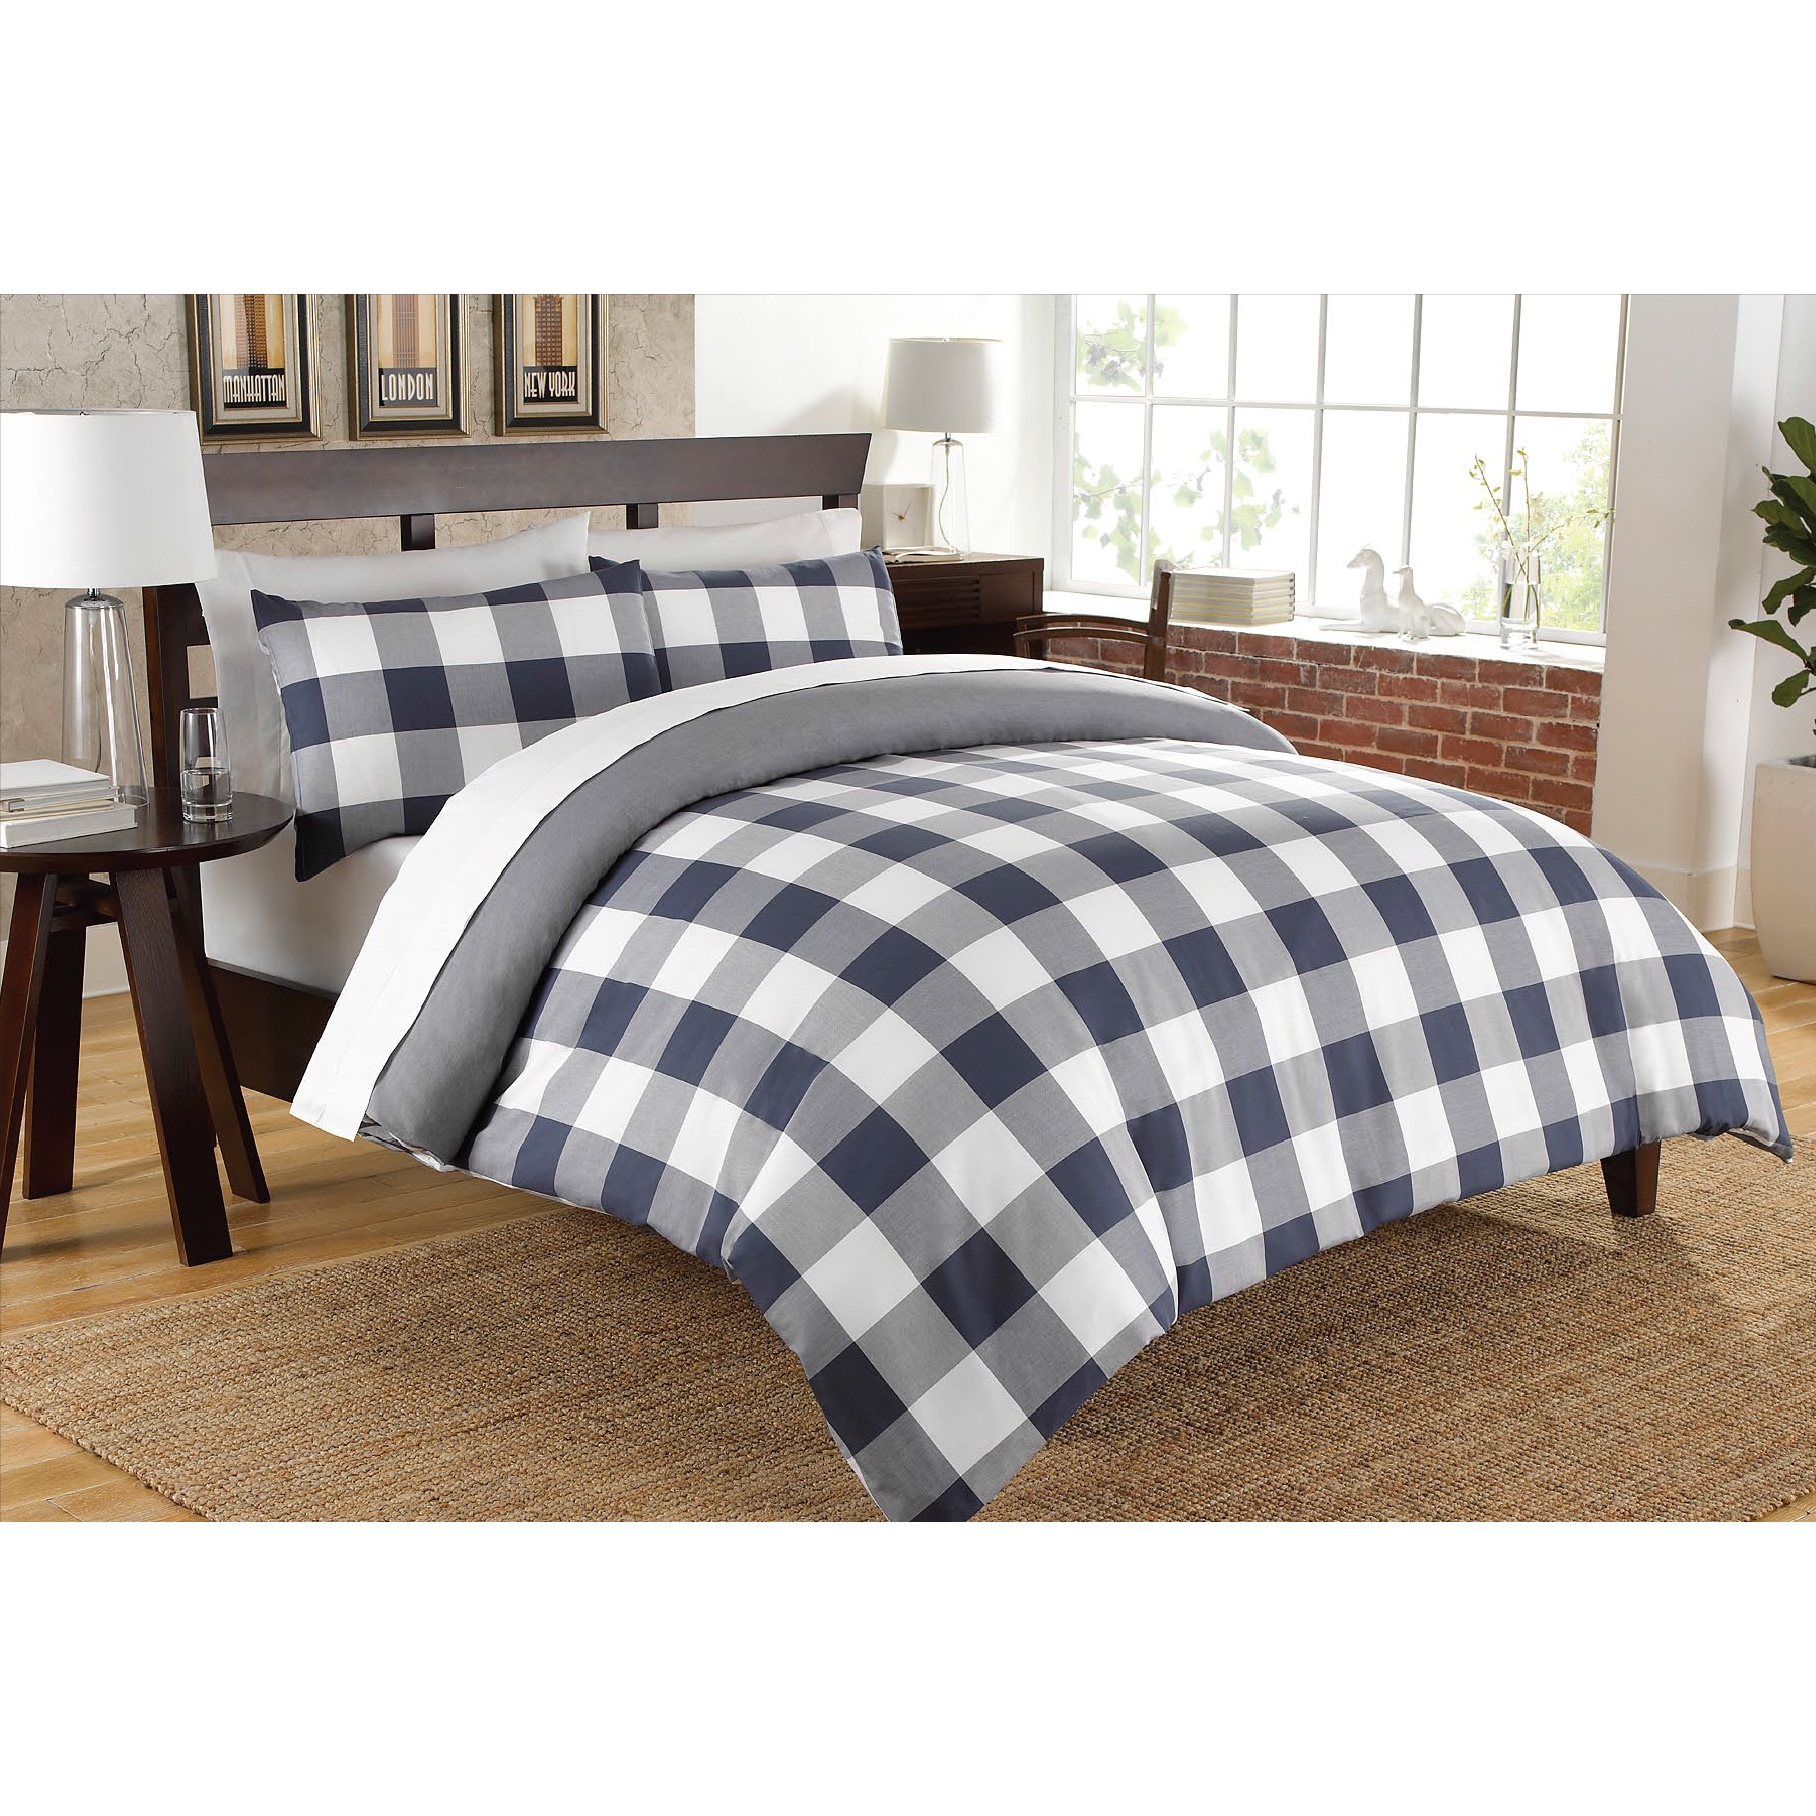 check cotton bedding double cover anthracite gingham pillowcases duvet dyed set of p picture yarn reversible